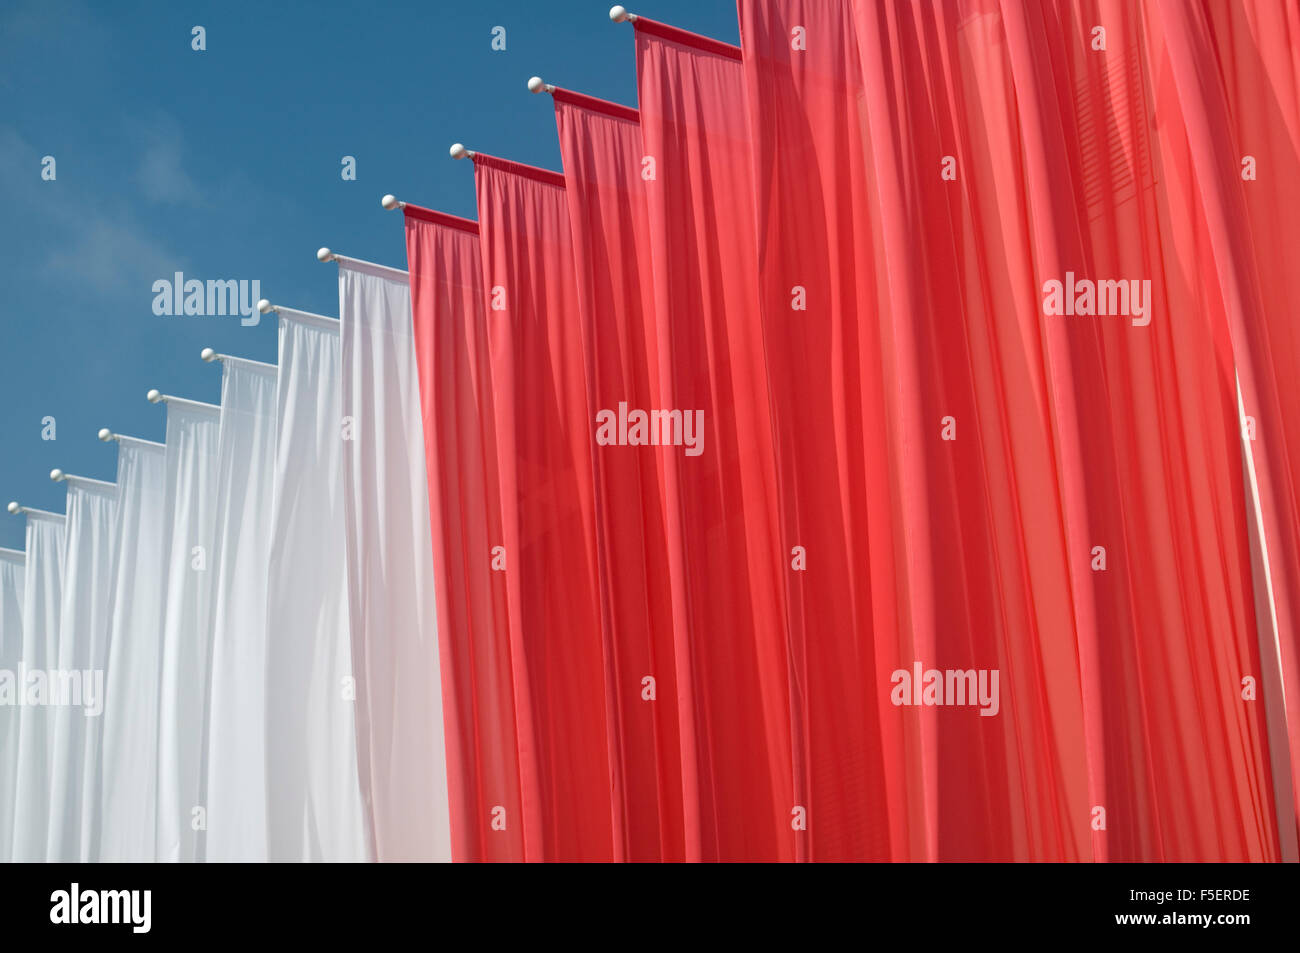 red and white banners - Stock Image